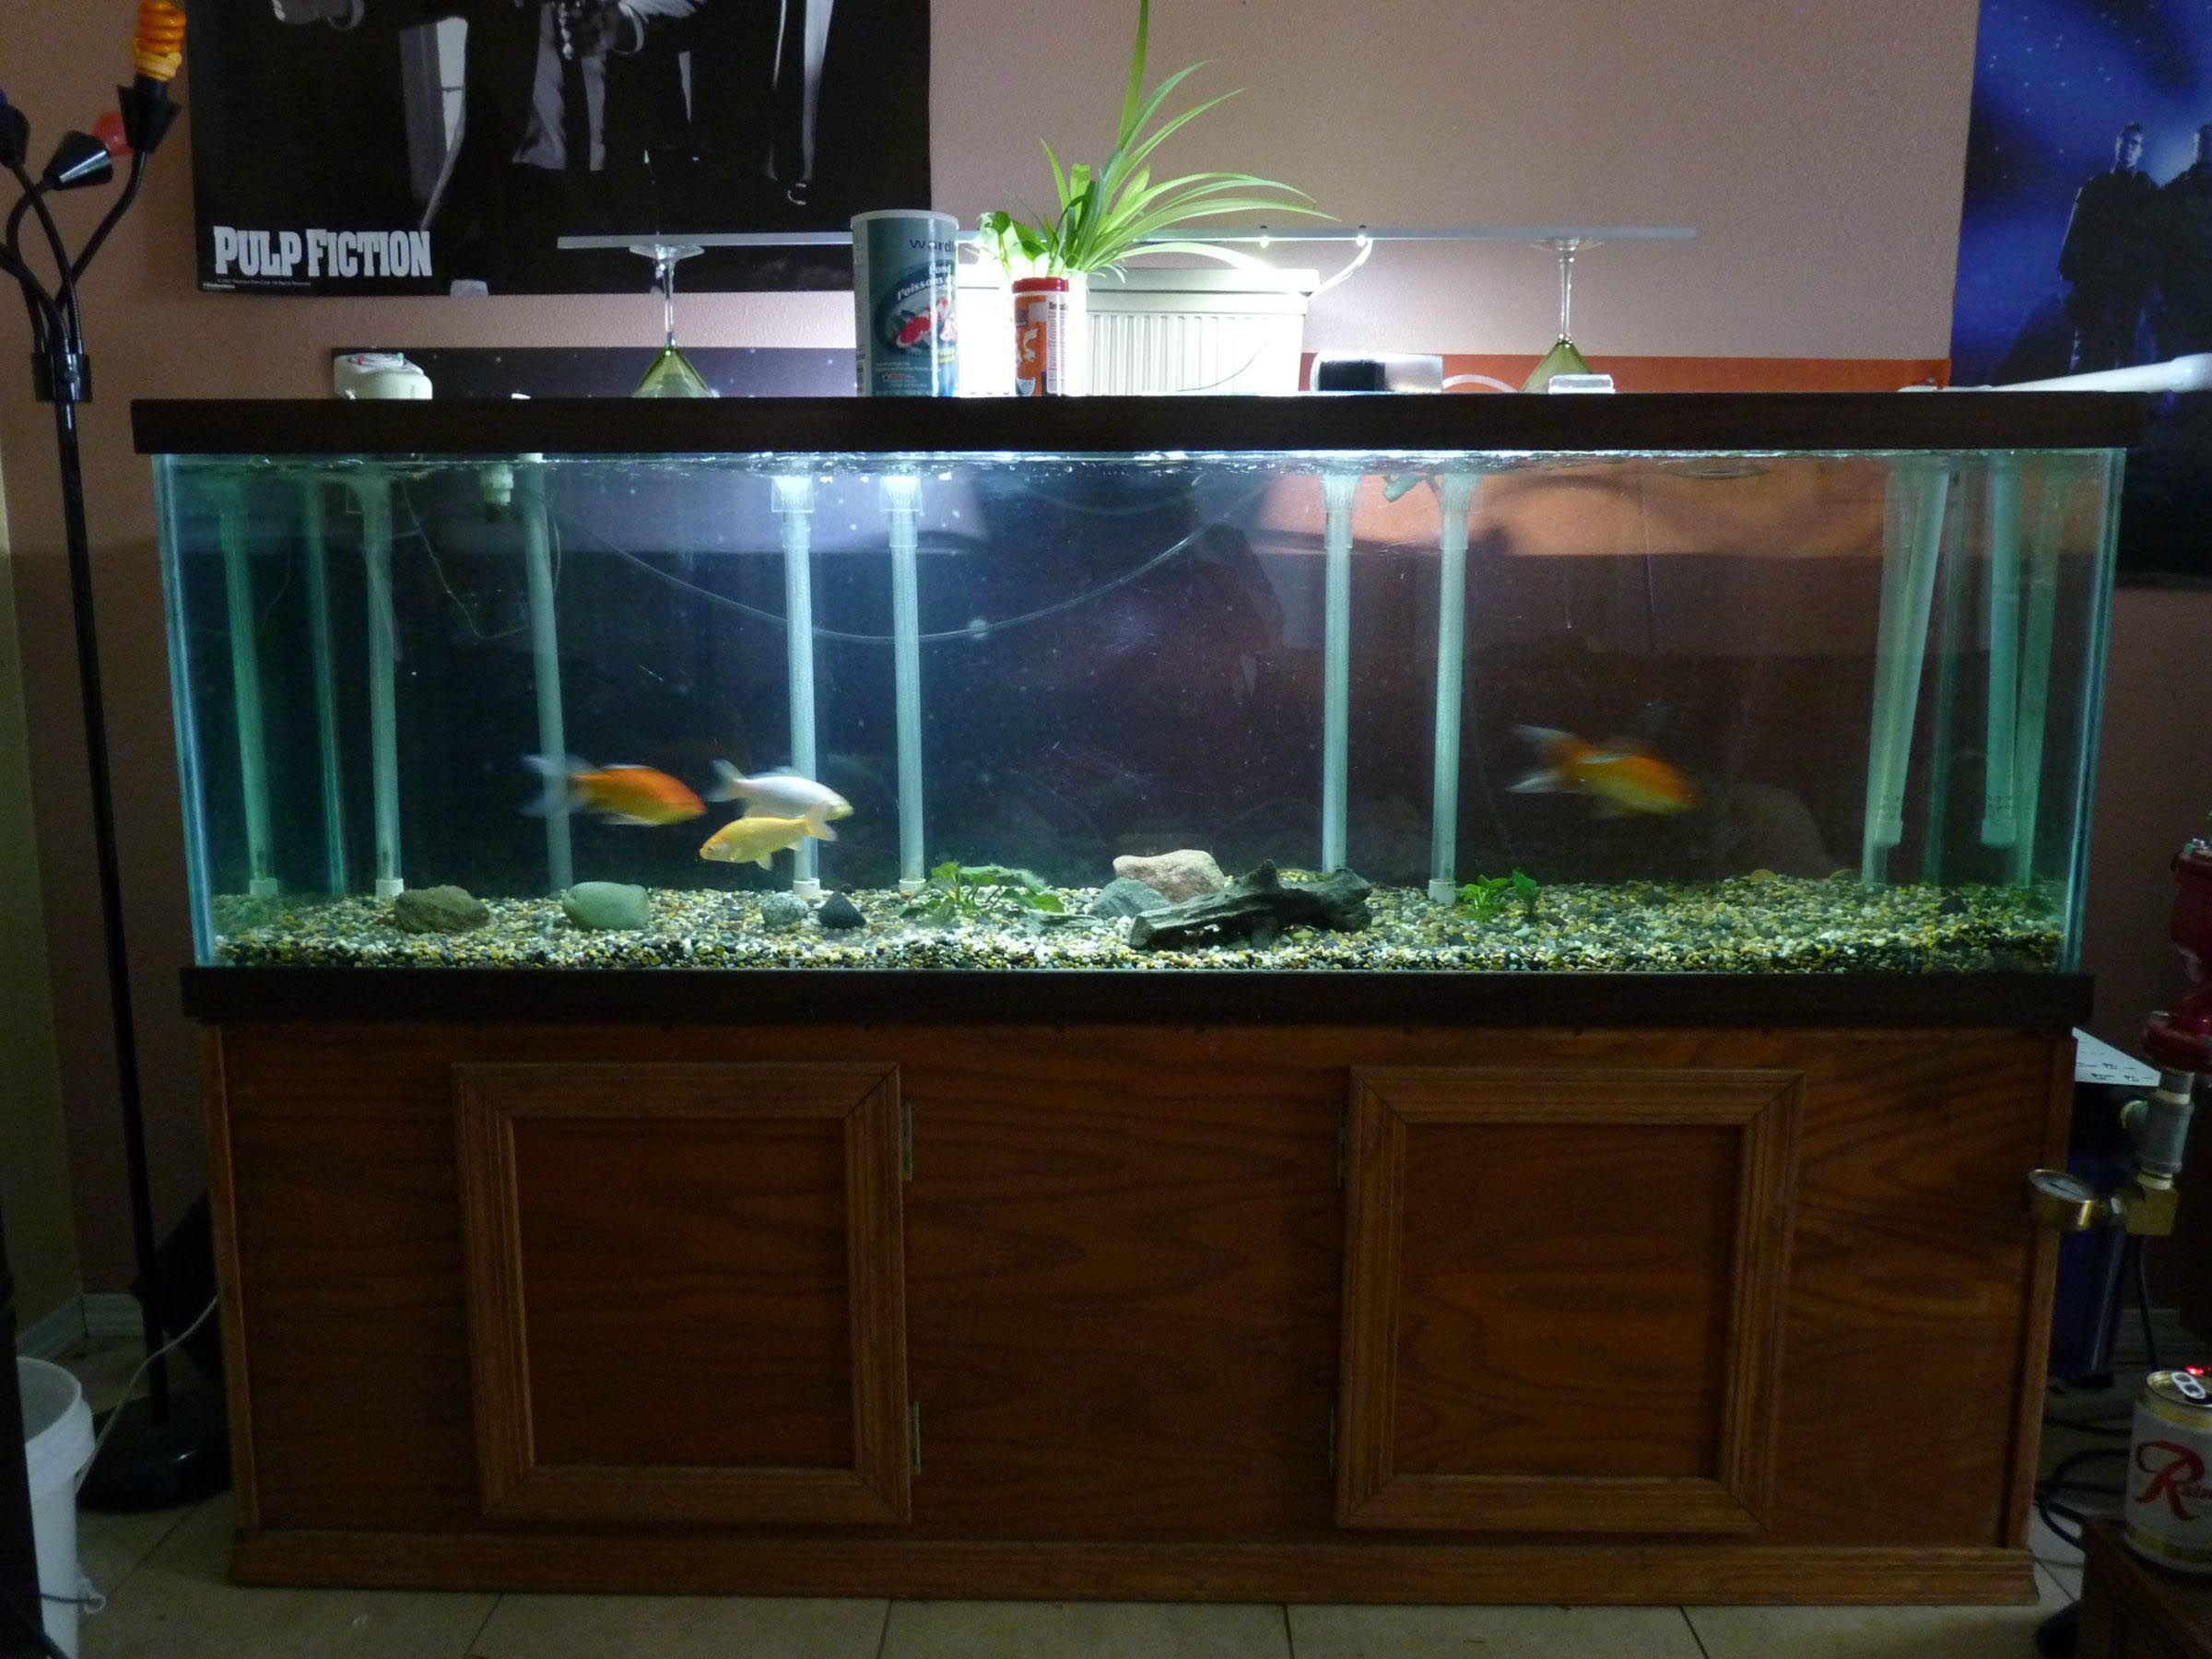 100 Gallons Aquarium Size Aquarium Ideas Pinterest